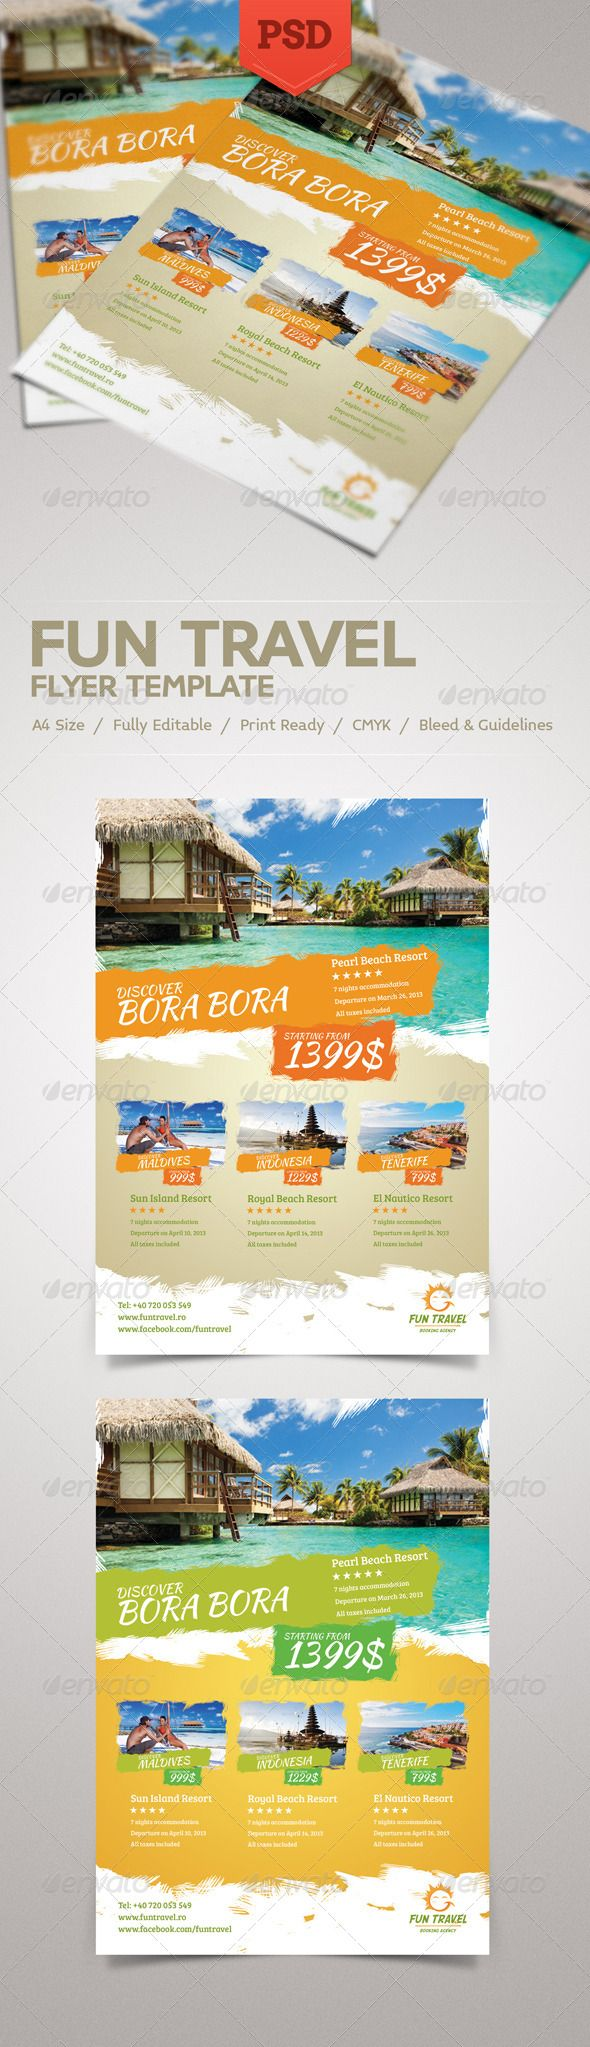 fun travel flyer corporate design the photo and perception fun travel flyer graphicriver item for